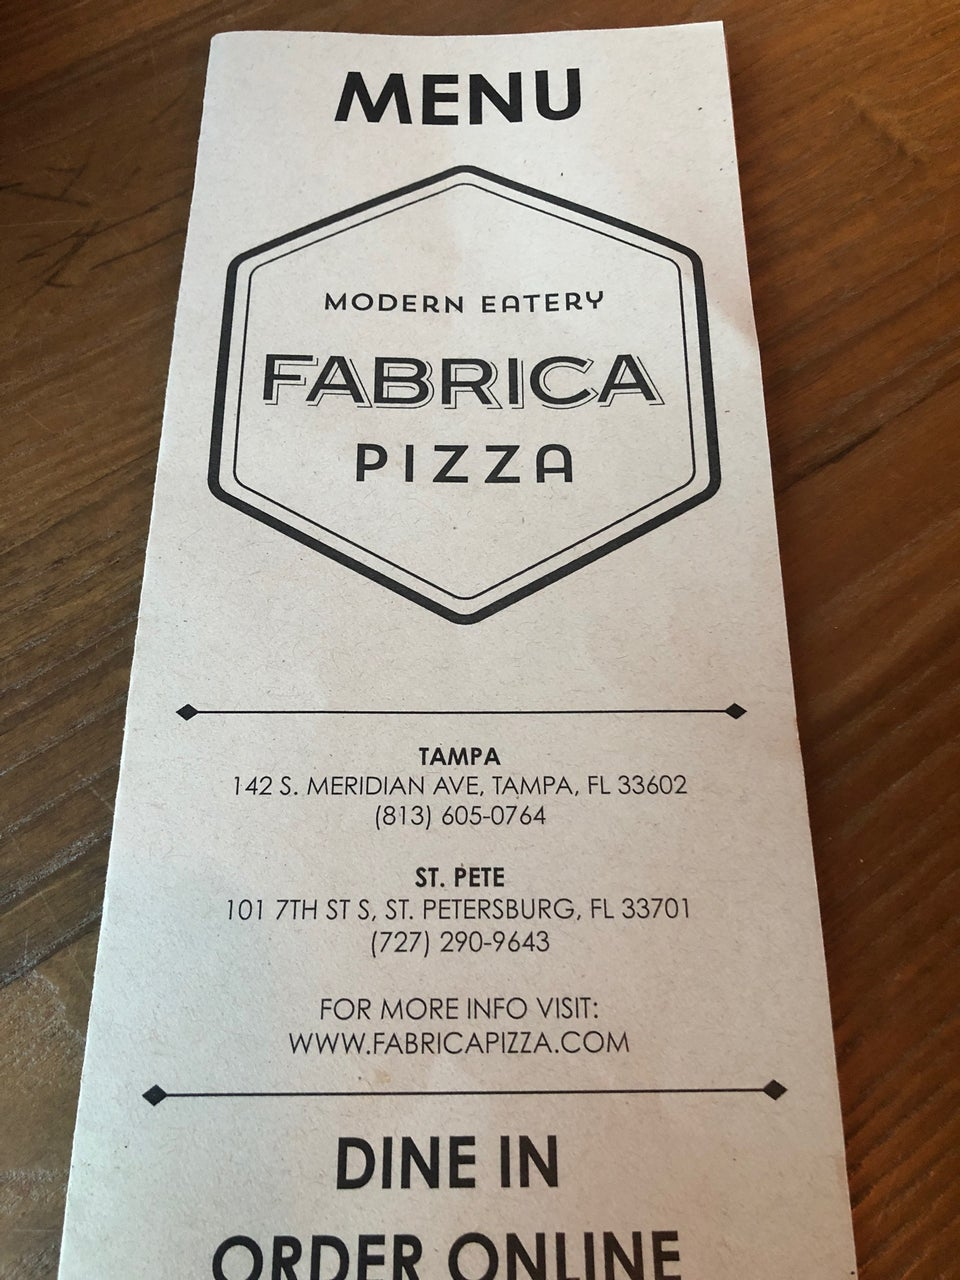 Fabrica Pizza 101 7th St S, St. Petersburg